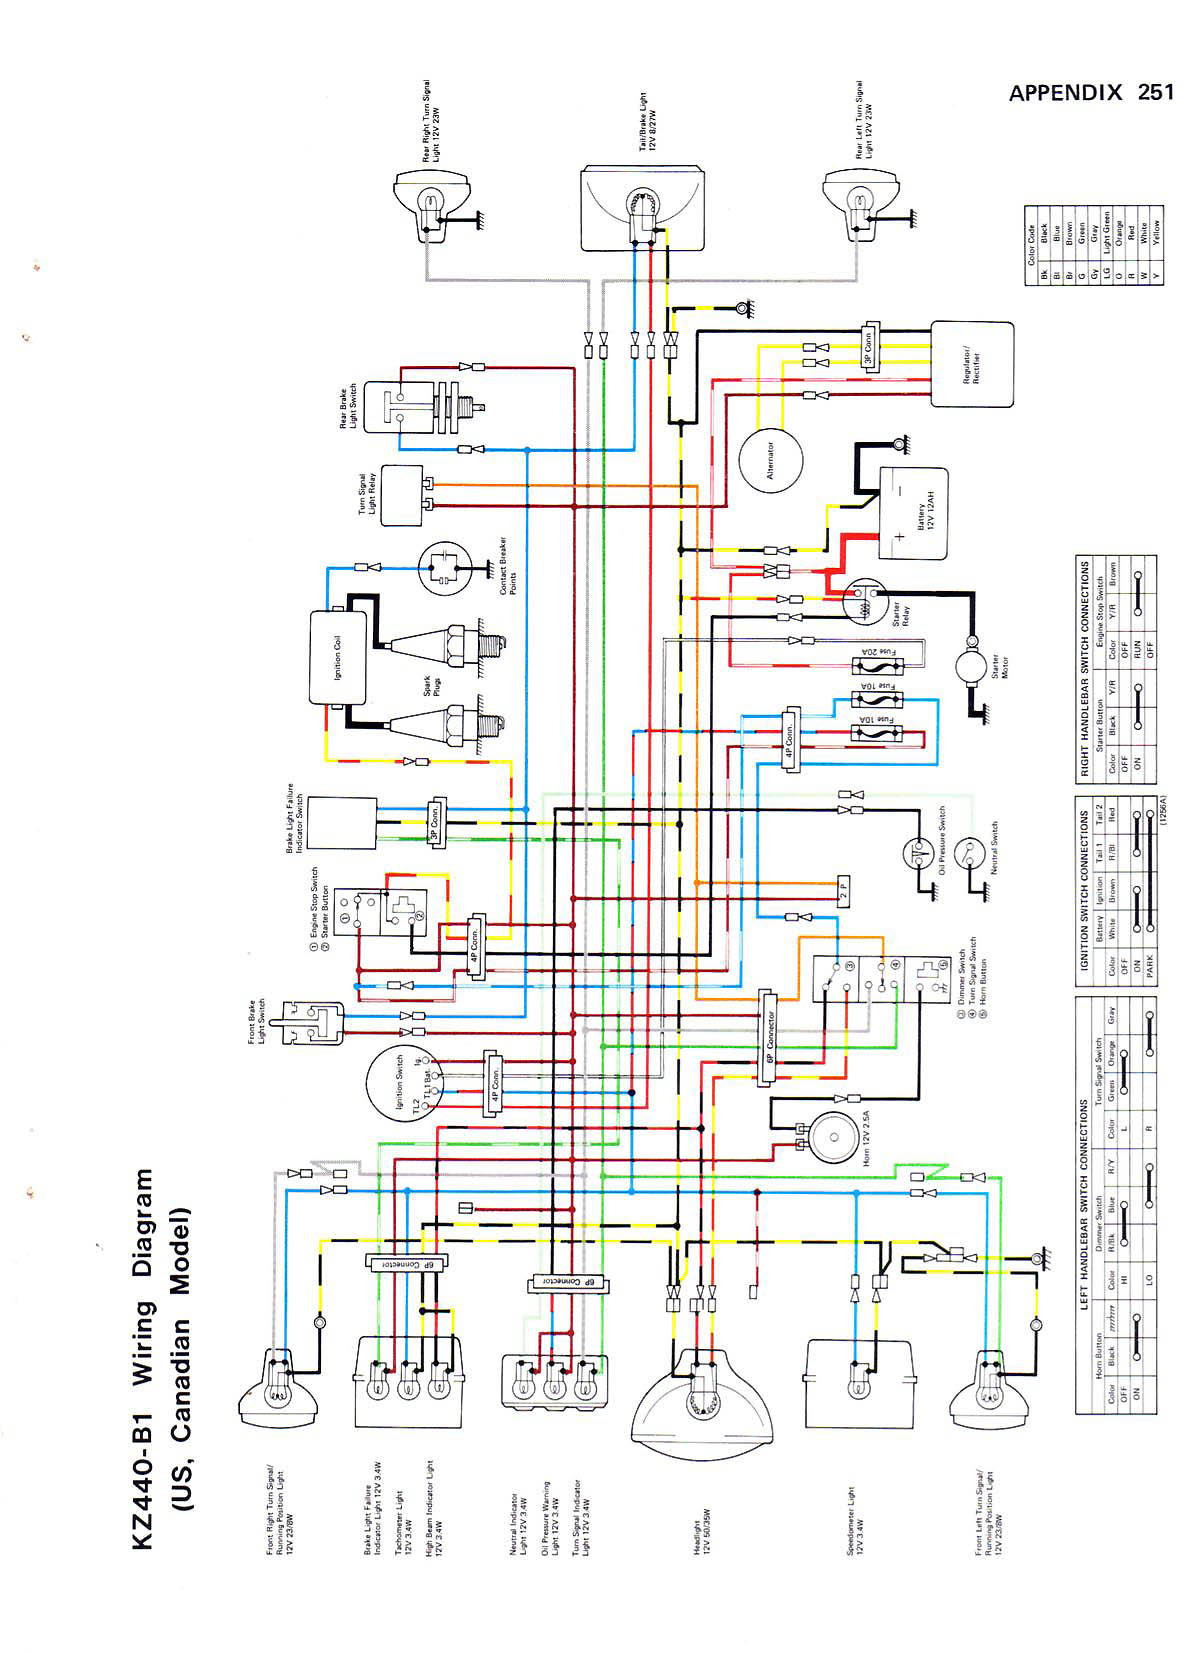 Kz400 Wiring For Explore Schematic Diagram Kawasaki W650 Index Of Kz440 Diagrams Rh Com Forum Specs